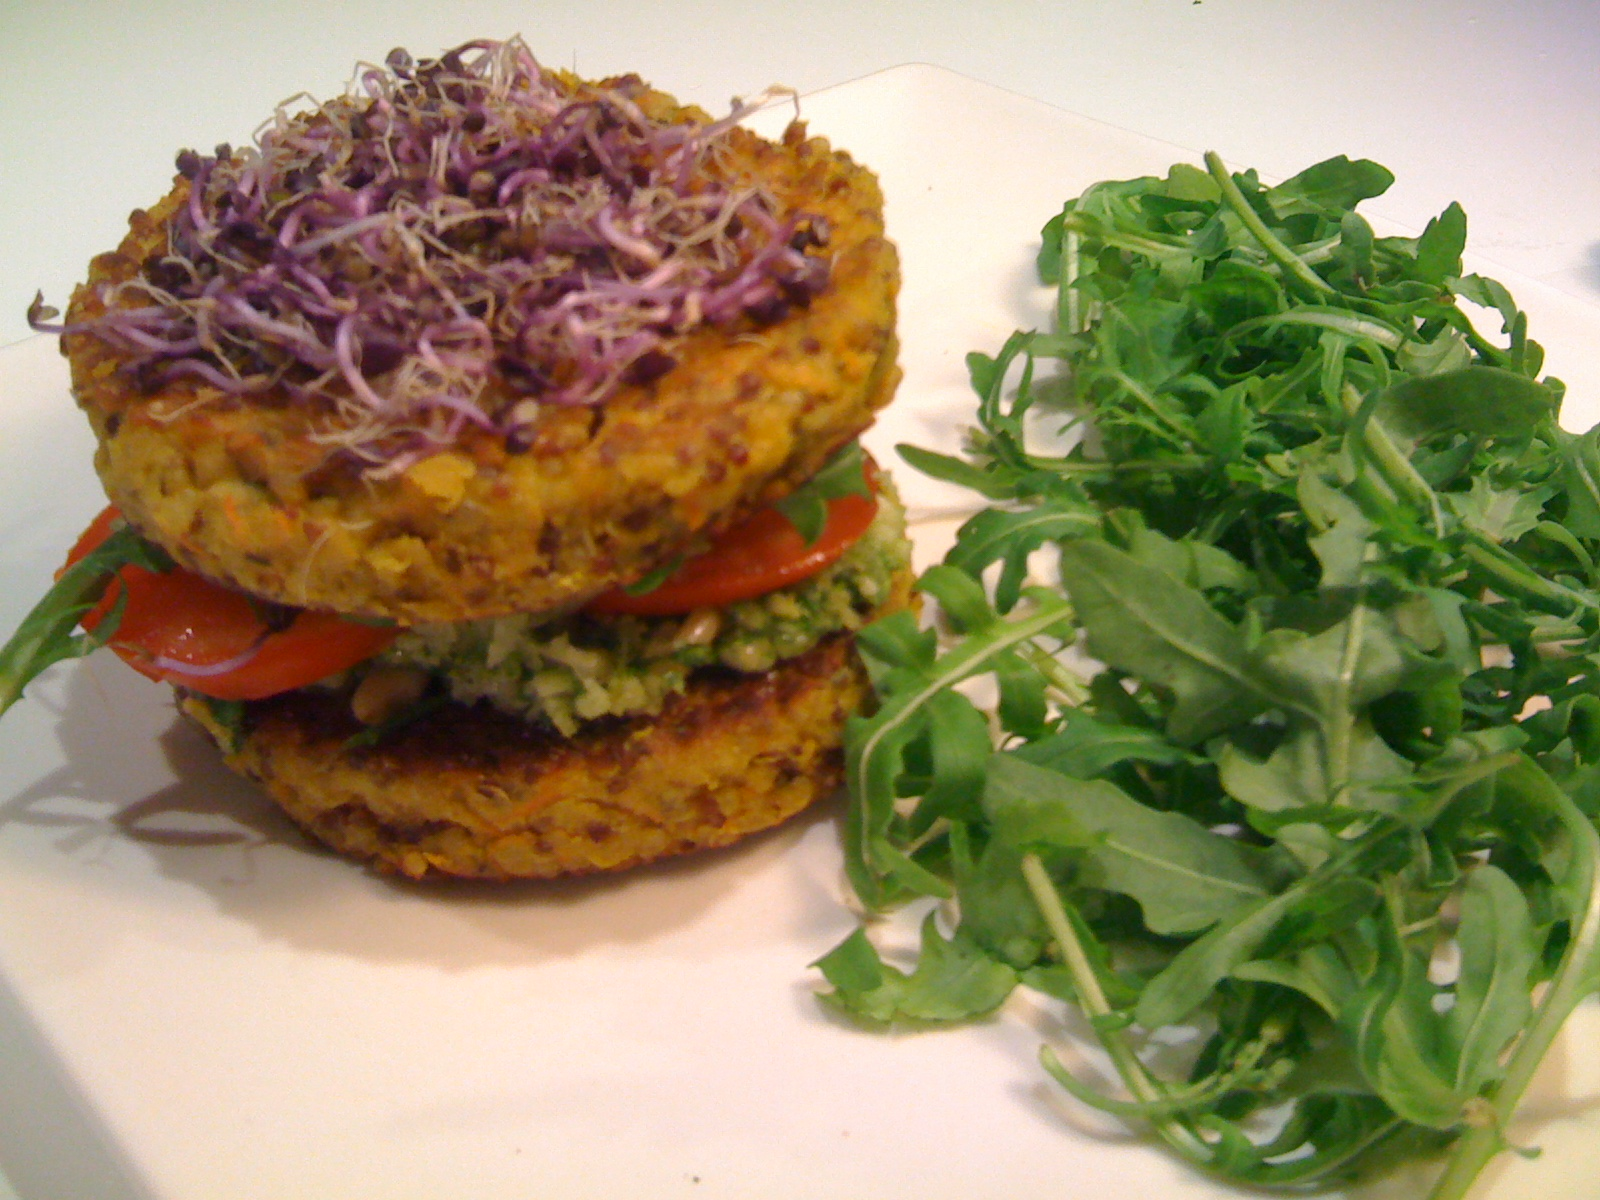 Kitchen express : Burger de quinoa